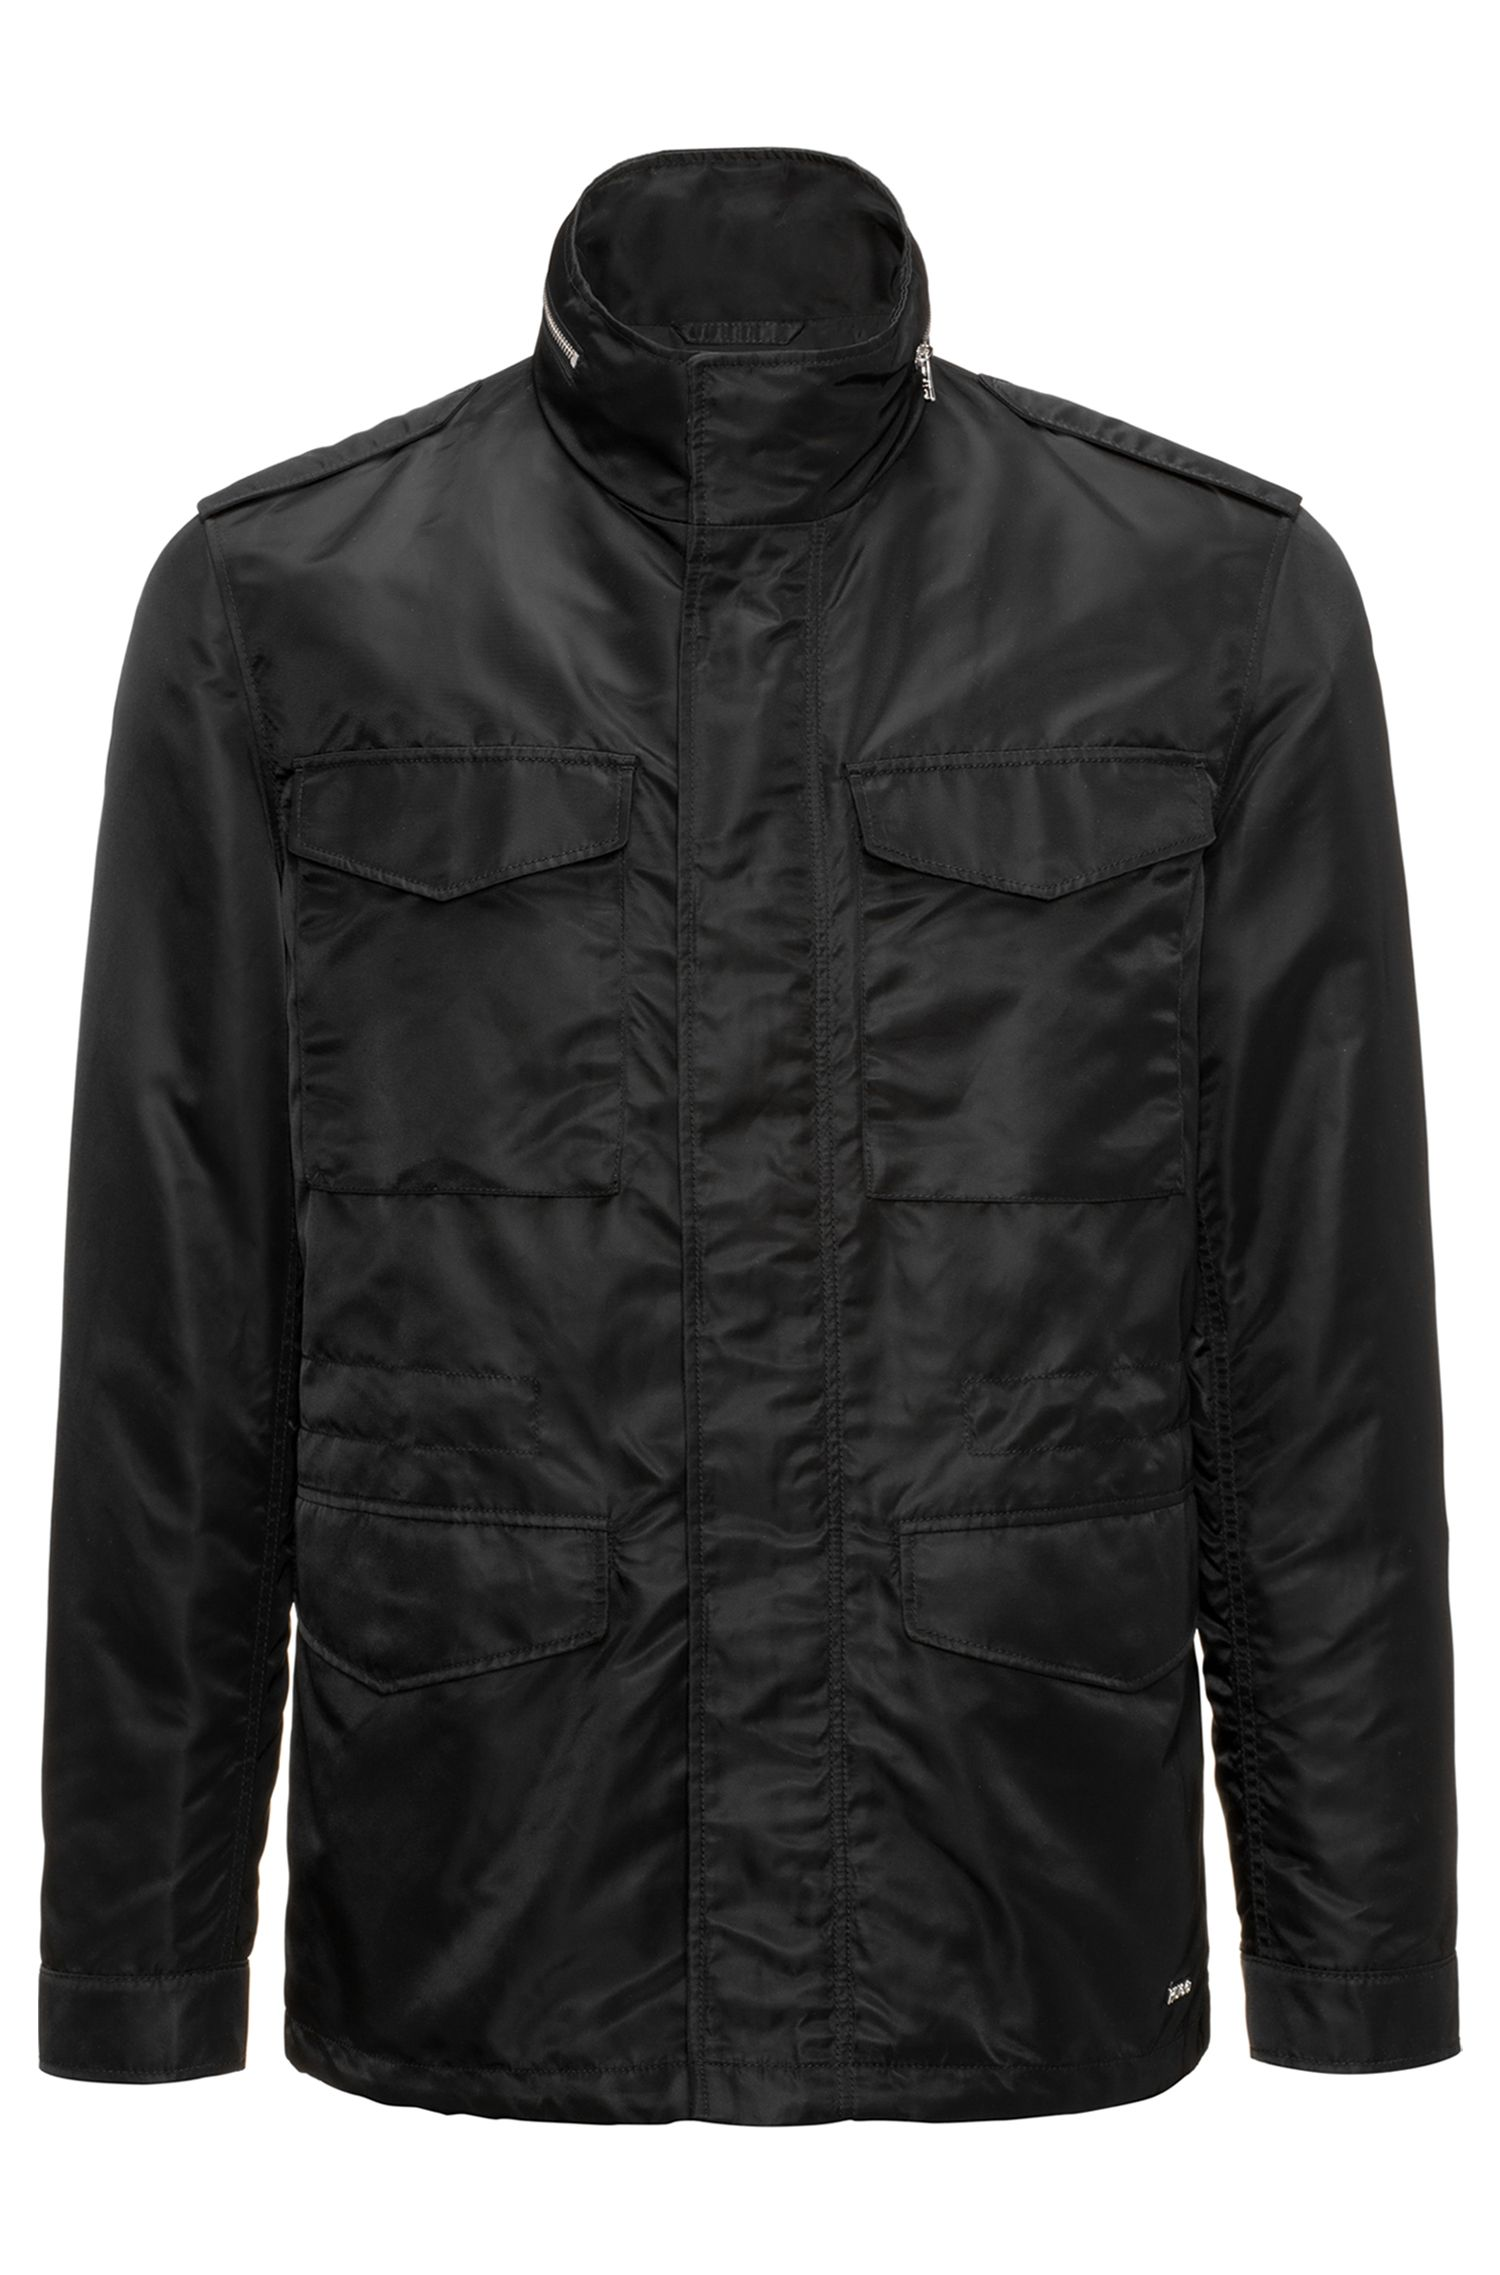 Field jacket in technical fabric with Teflon™ finish